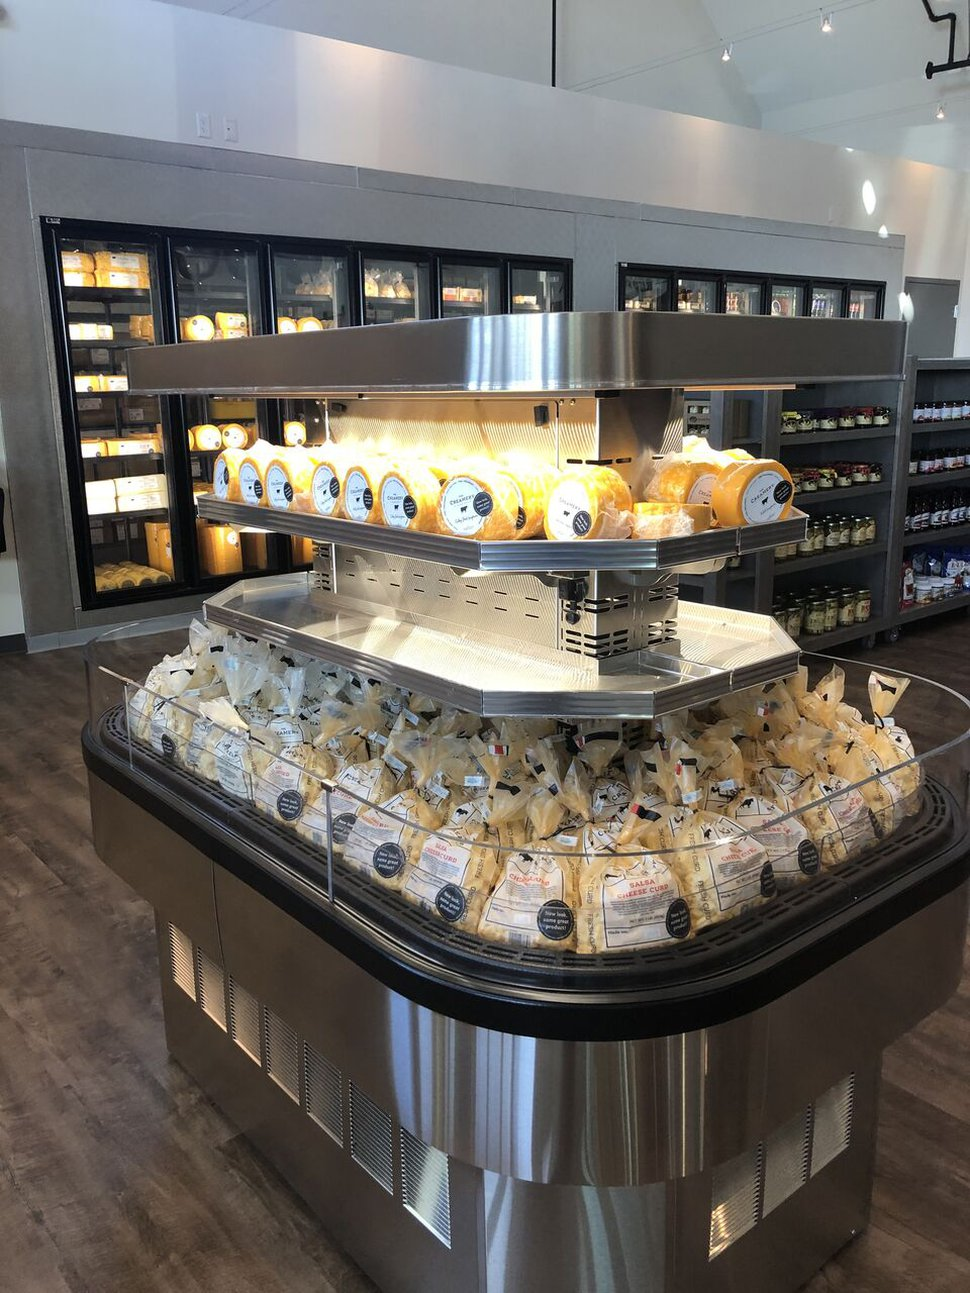 (Heather L. King | For The Salt Lake Tribune) A cheese display at The Creamery, a new retail store in Beaver, Utah.